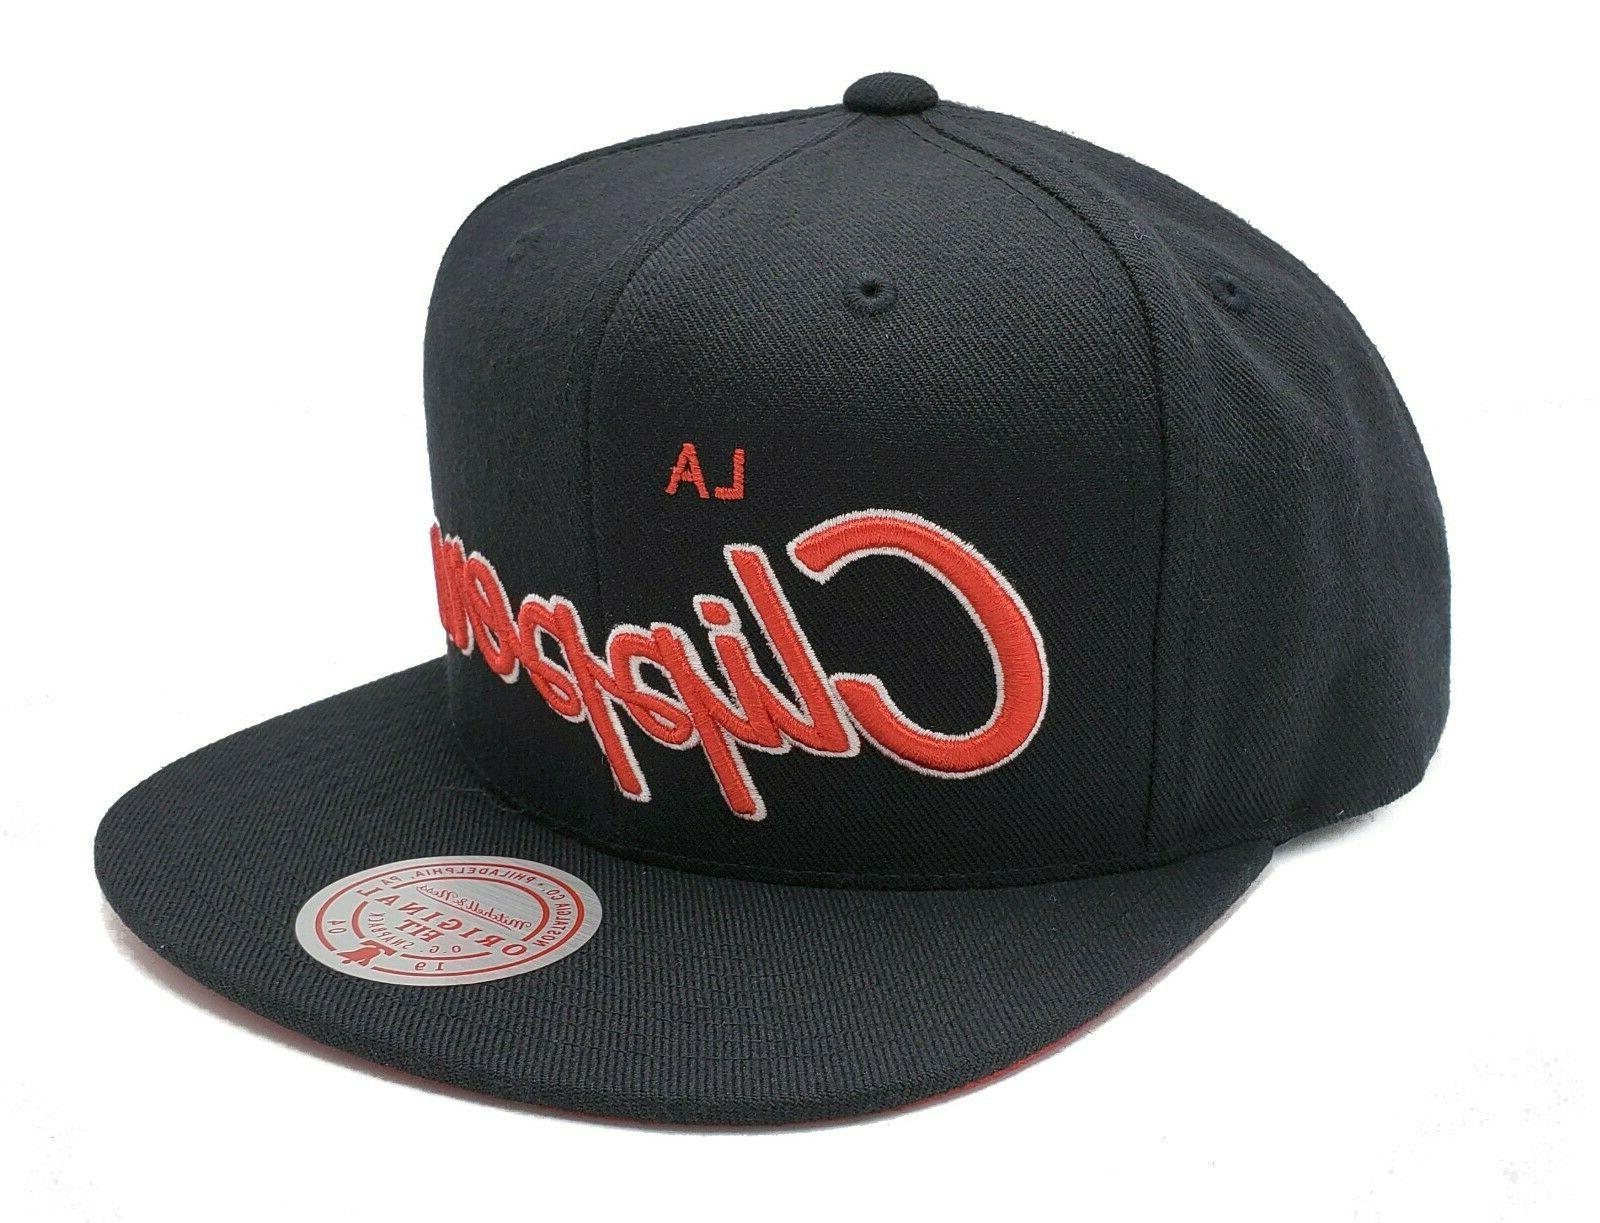 Angeles Clippers Adjustable